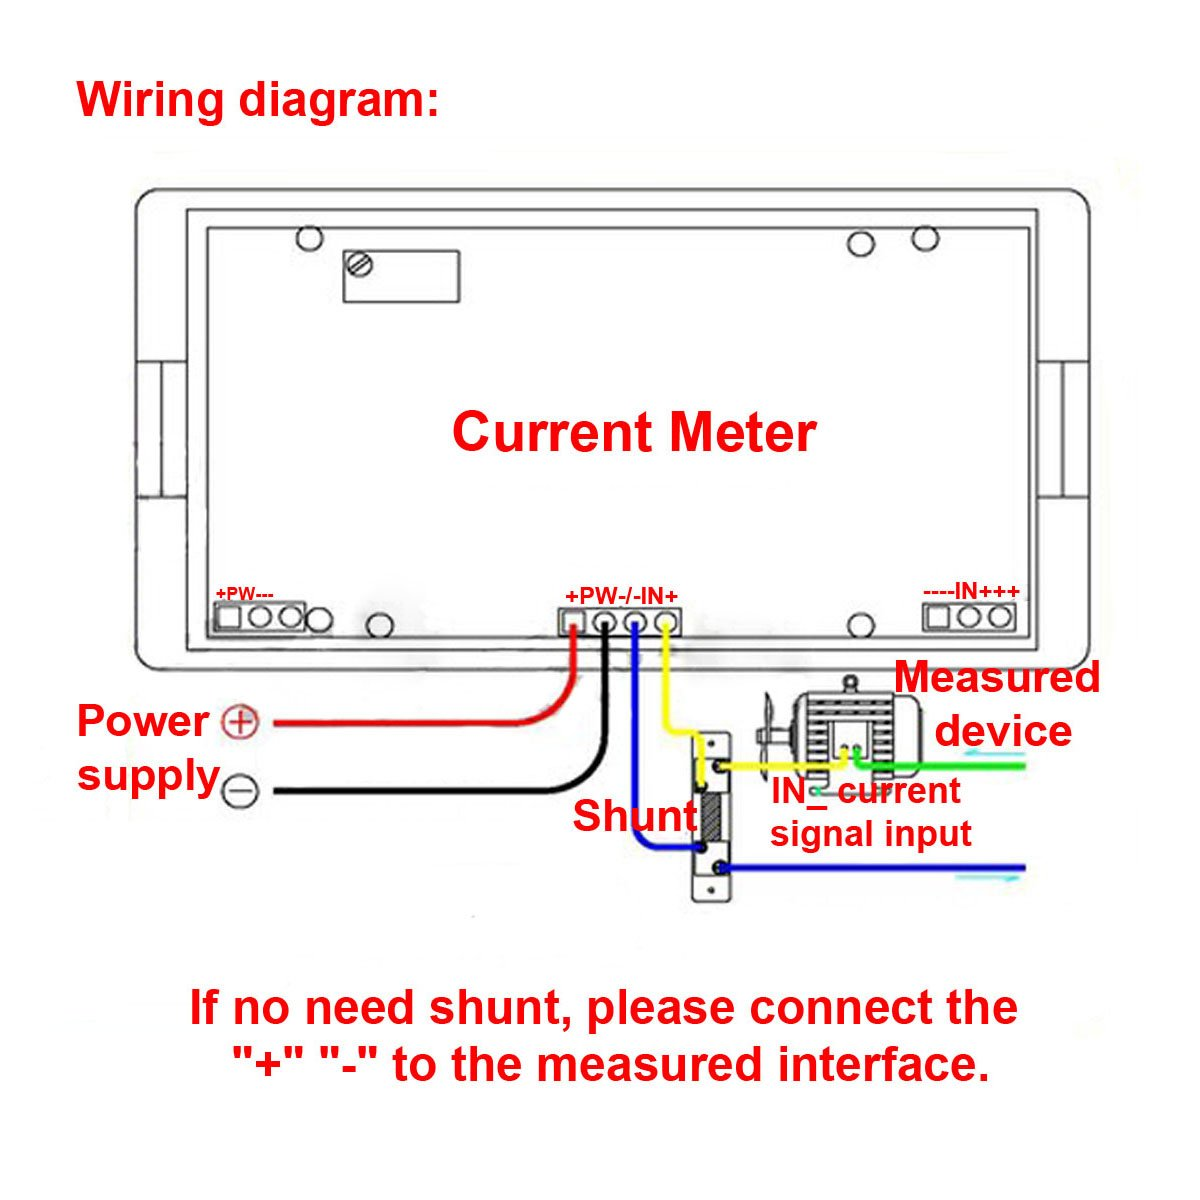 71y4ihHRXiL._SL1200_ drok wiring diagram drok power supply \u2022 wiring diagrams j squared co ac amp meter wiring diagram at cos-gaming.co